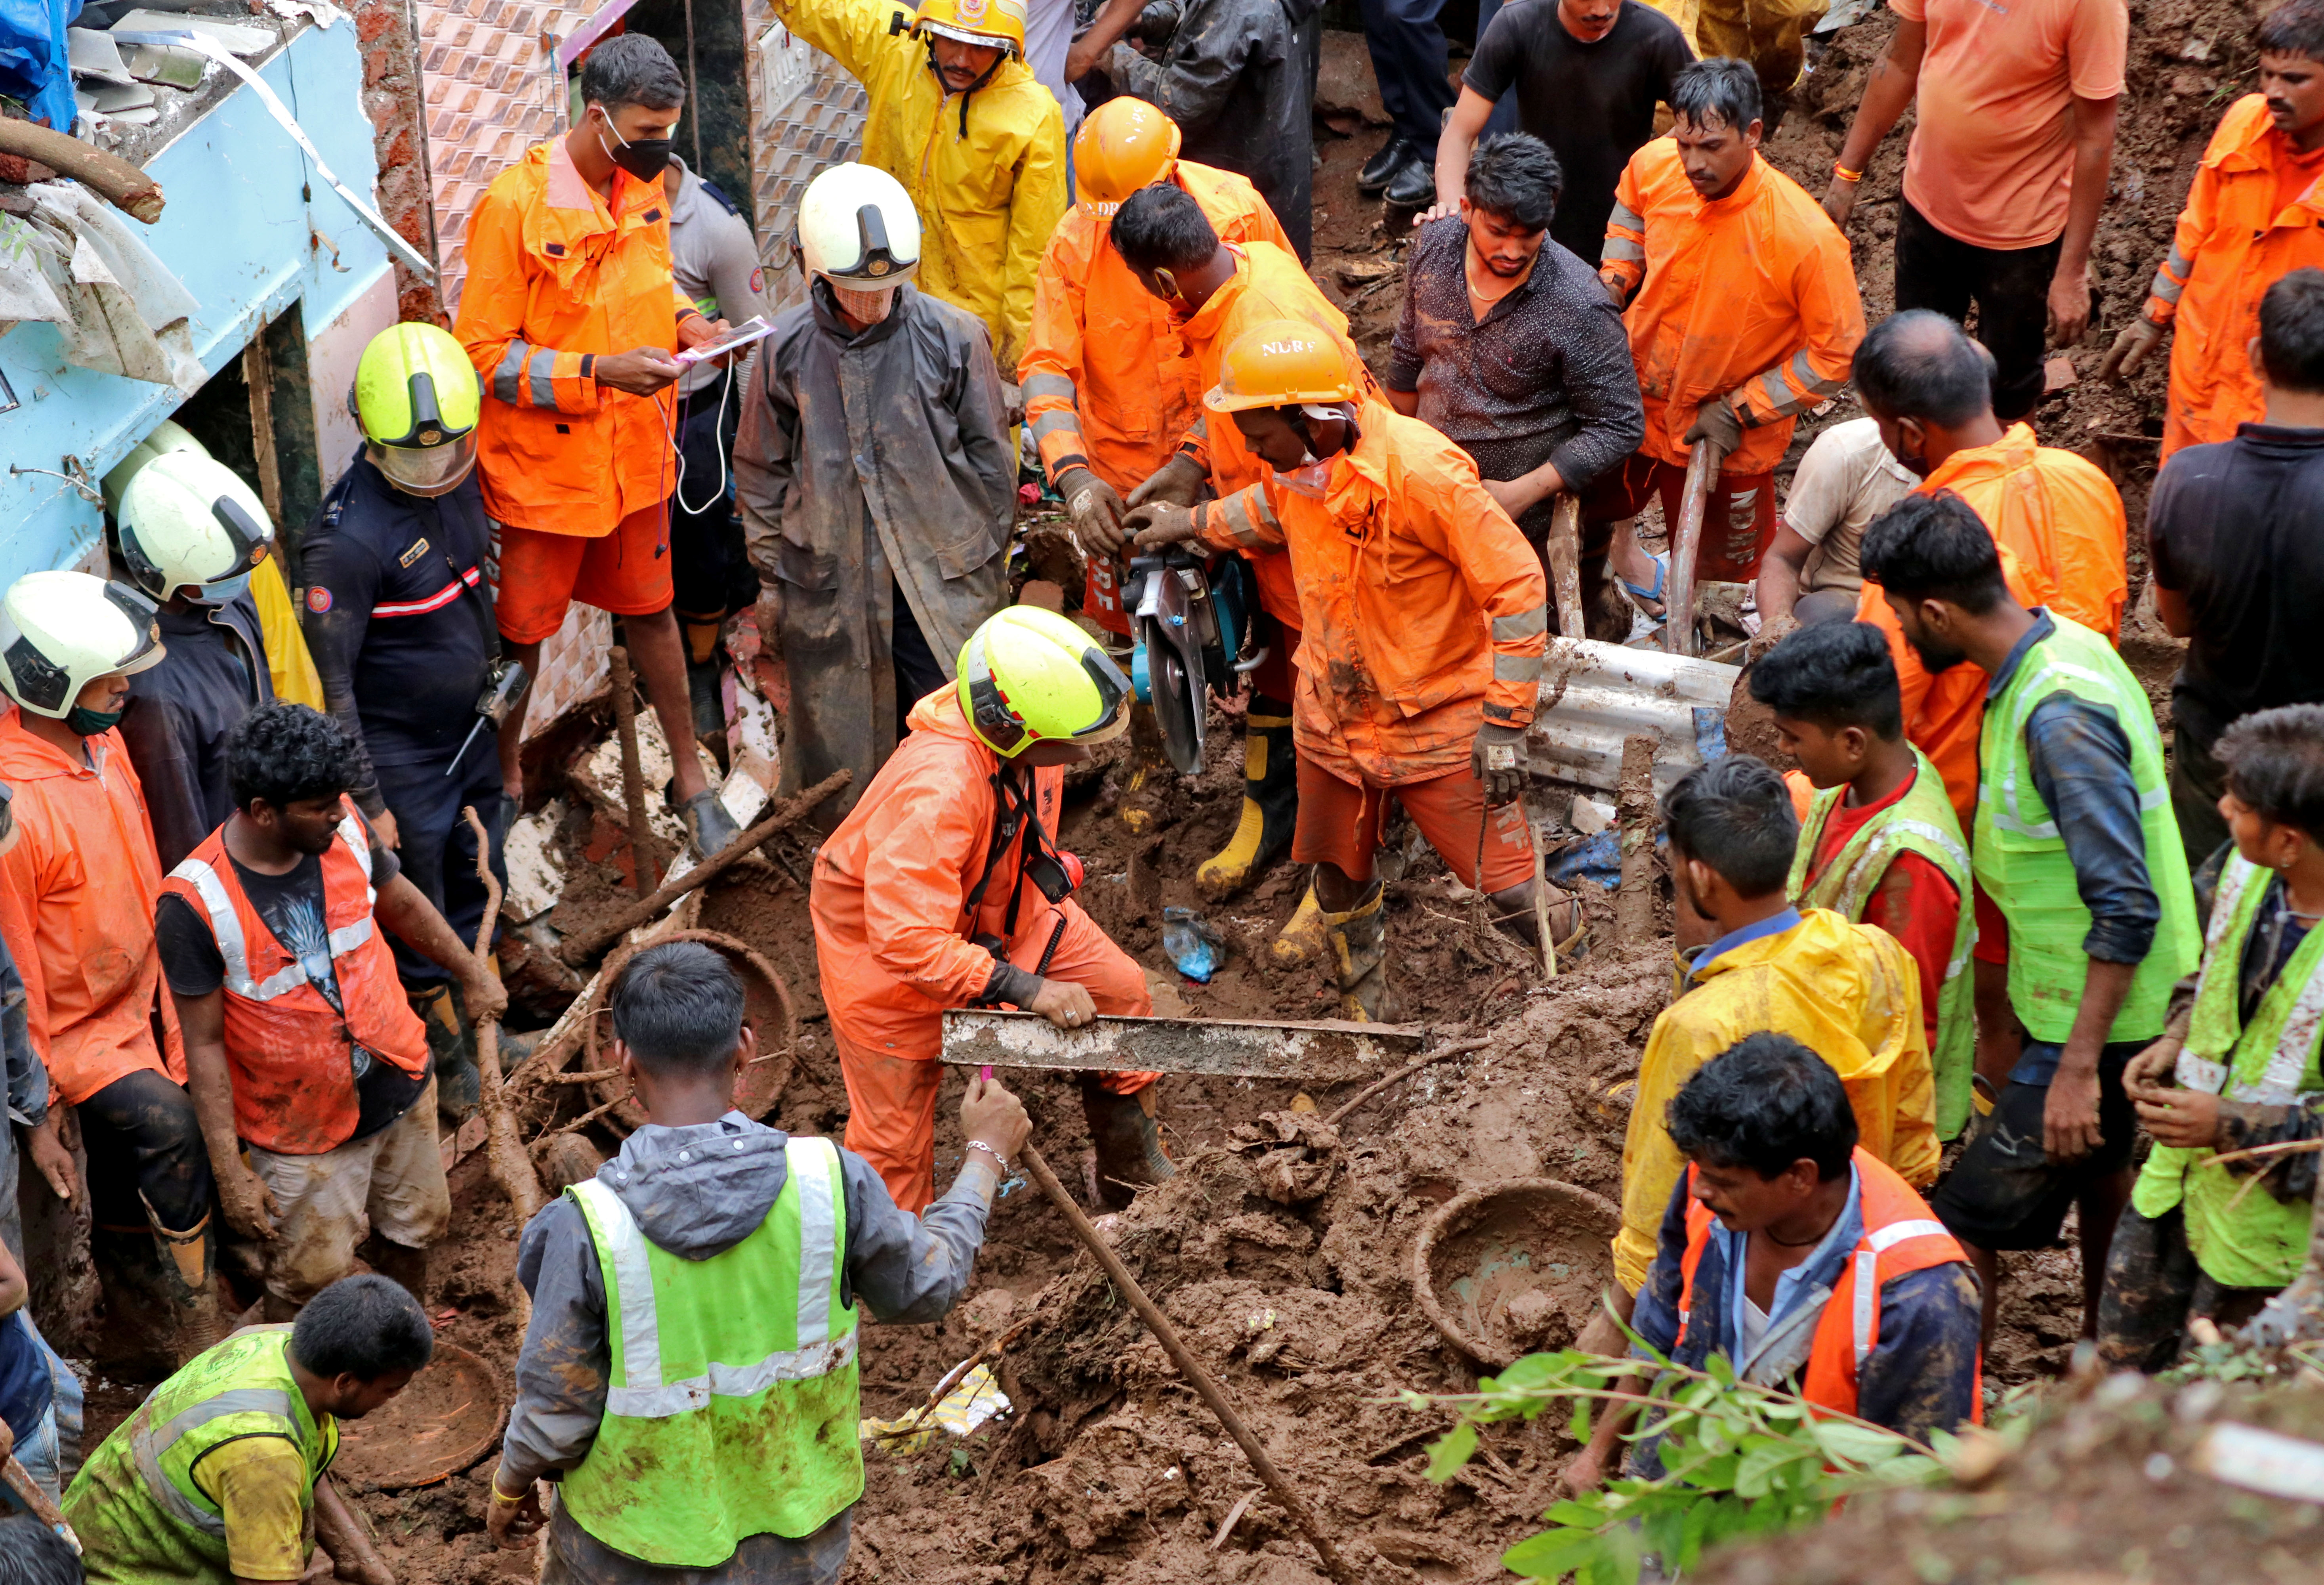 Rescue workers remove debris as they search for survivors after a residential house collapsed due to landslide caused by heavy rainfall in Mumbai, India, July 18, 2021. REUTERS/Niharika Kulkarni